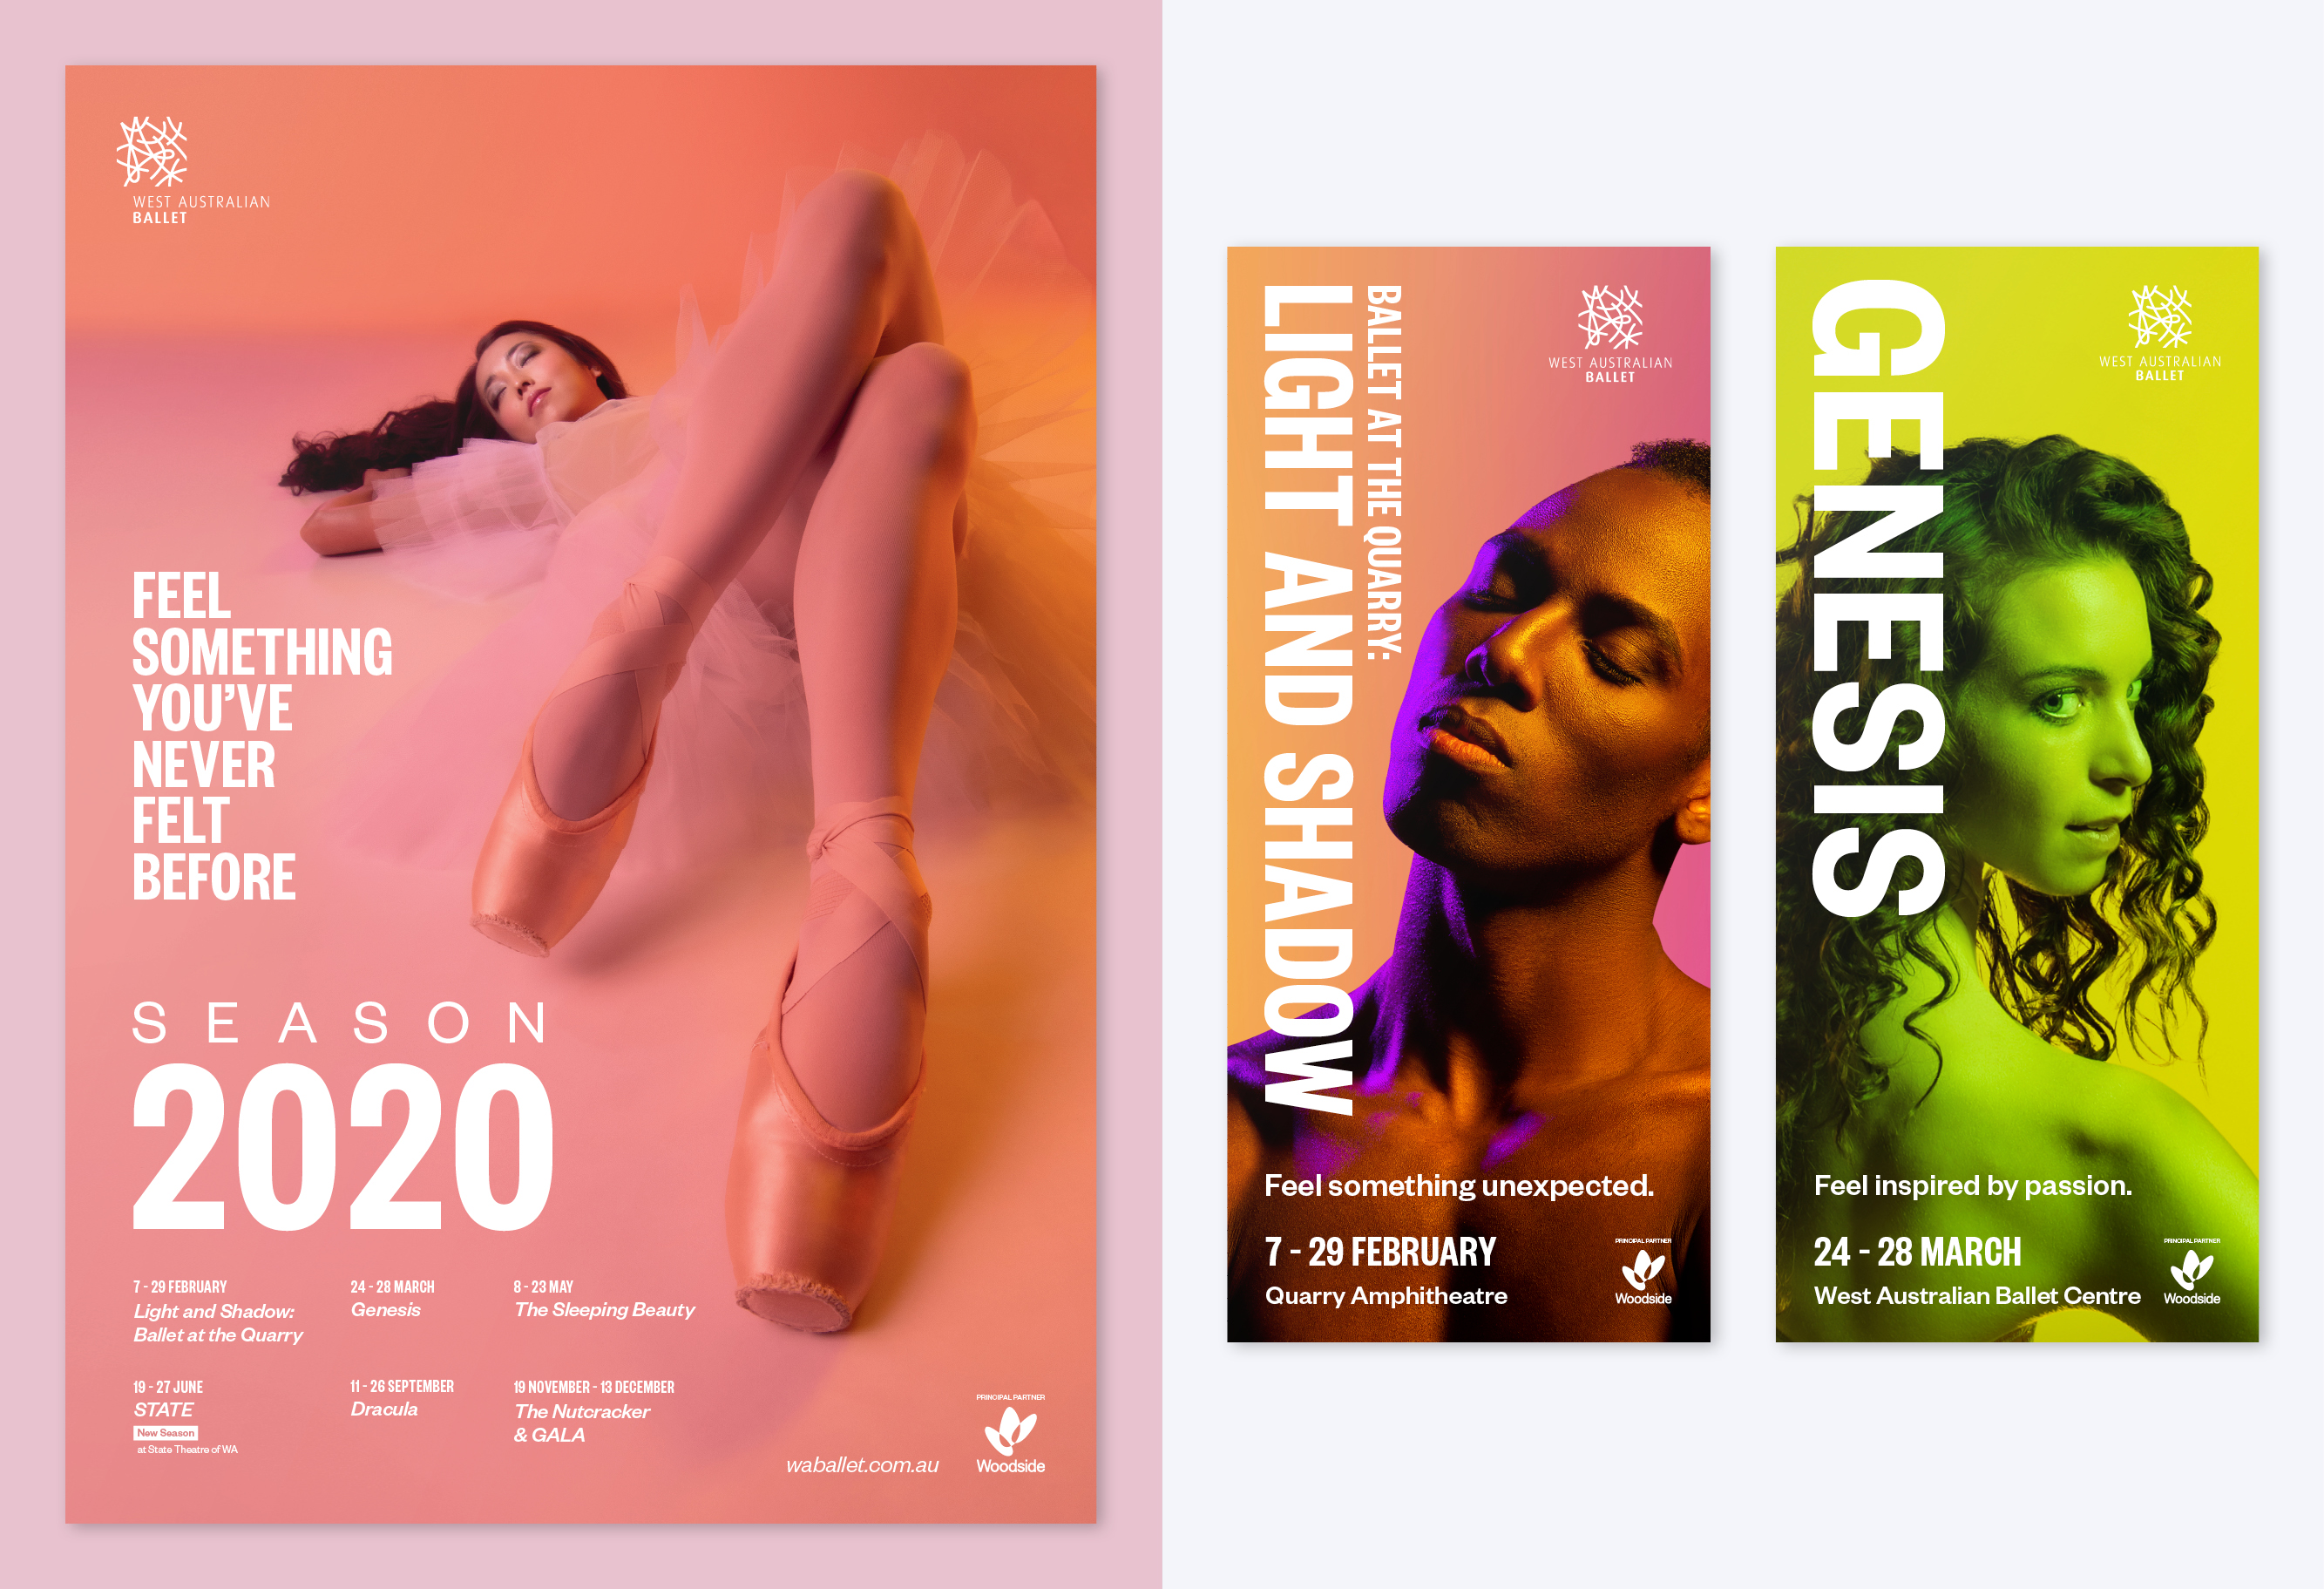 West Australian Ballet brings the power of feeling to every moment with new 2020 season campaign via Meerkats